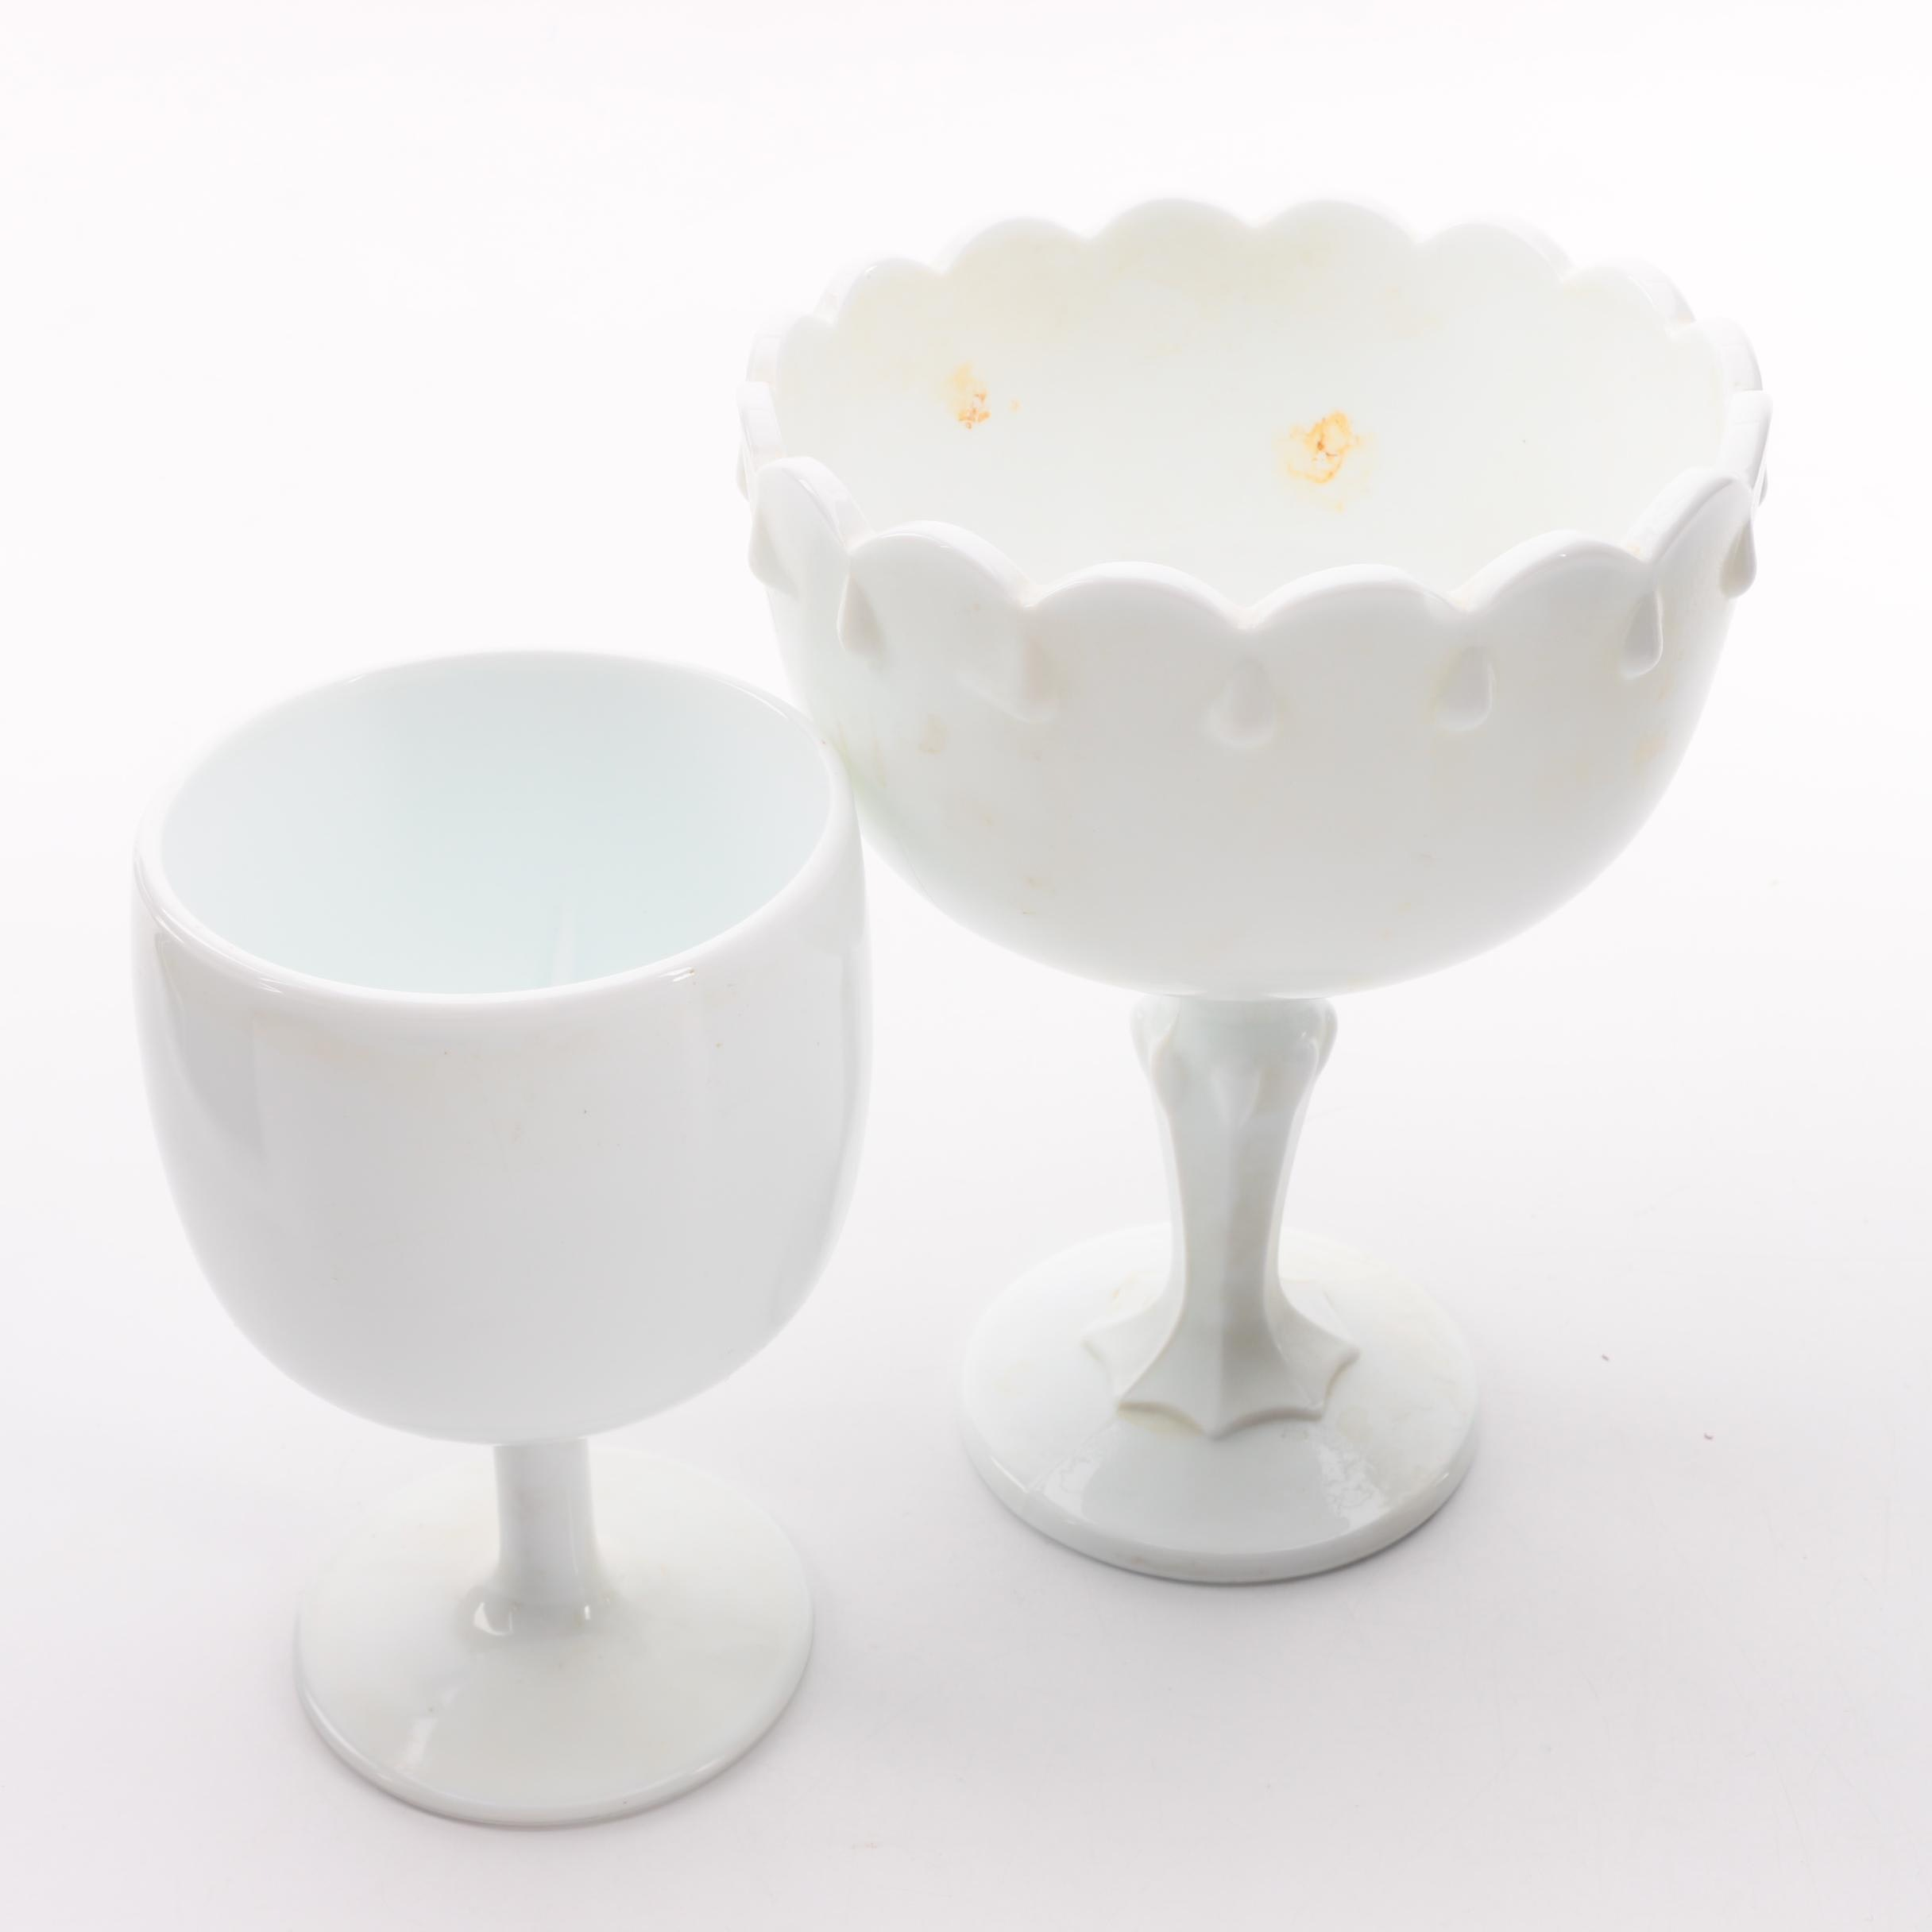 Vintage Milk Glass Compote and Goblet